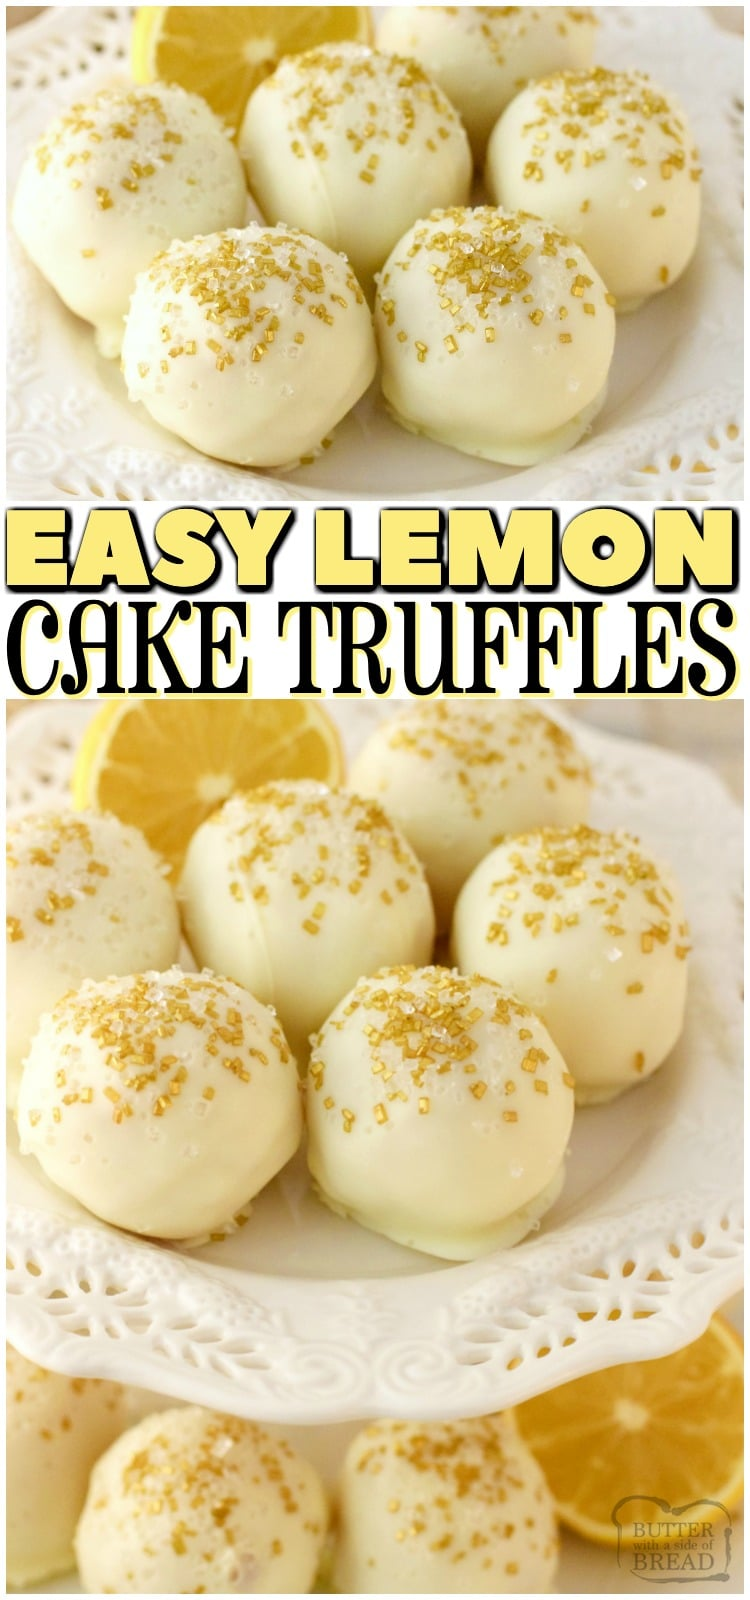 Lemon Cake Truffles made easy with lemon pound cake crumbled and formed into small truffles, then dipped in white chocolate! Easy Lemon Truffles perfect for parties!